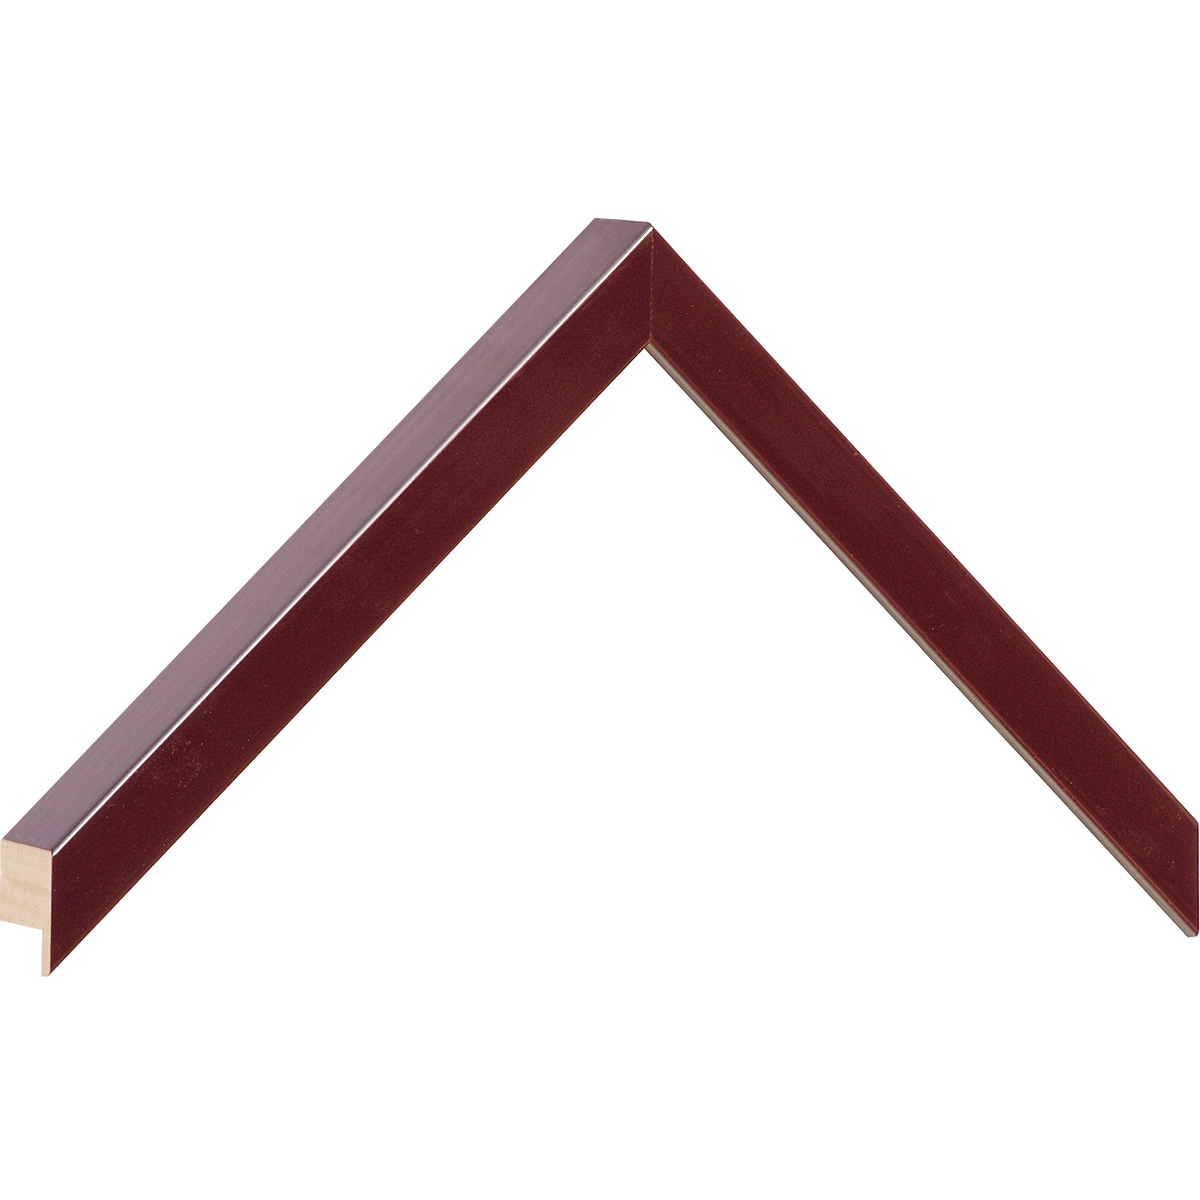 Moulding ayous, width 15mm height 25 - burgundy lacquered